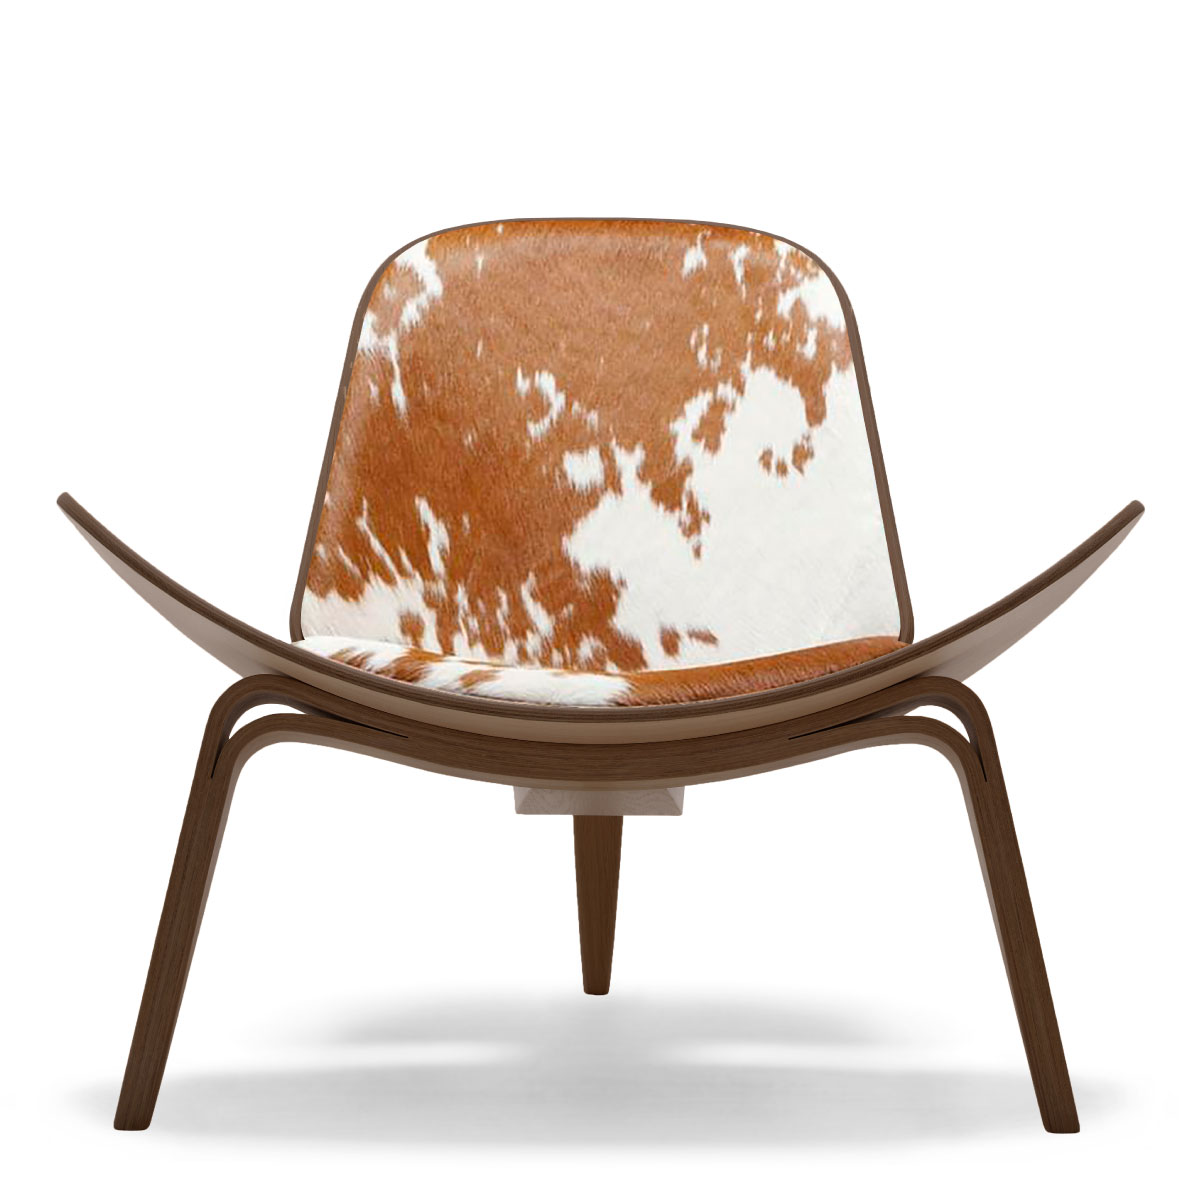 Awe Inspiring Carl Hansen Son Ch07 Shell Chair Walnut Lacquer Brown Squirreltailoven Fun Painted Chair Ideas Images Squirreltailovenorg